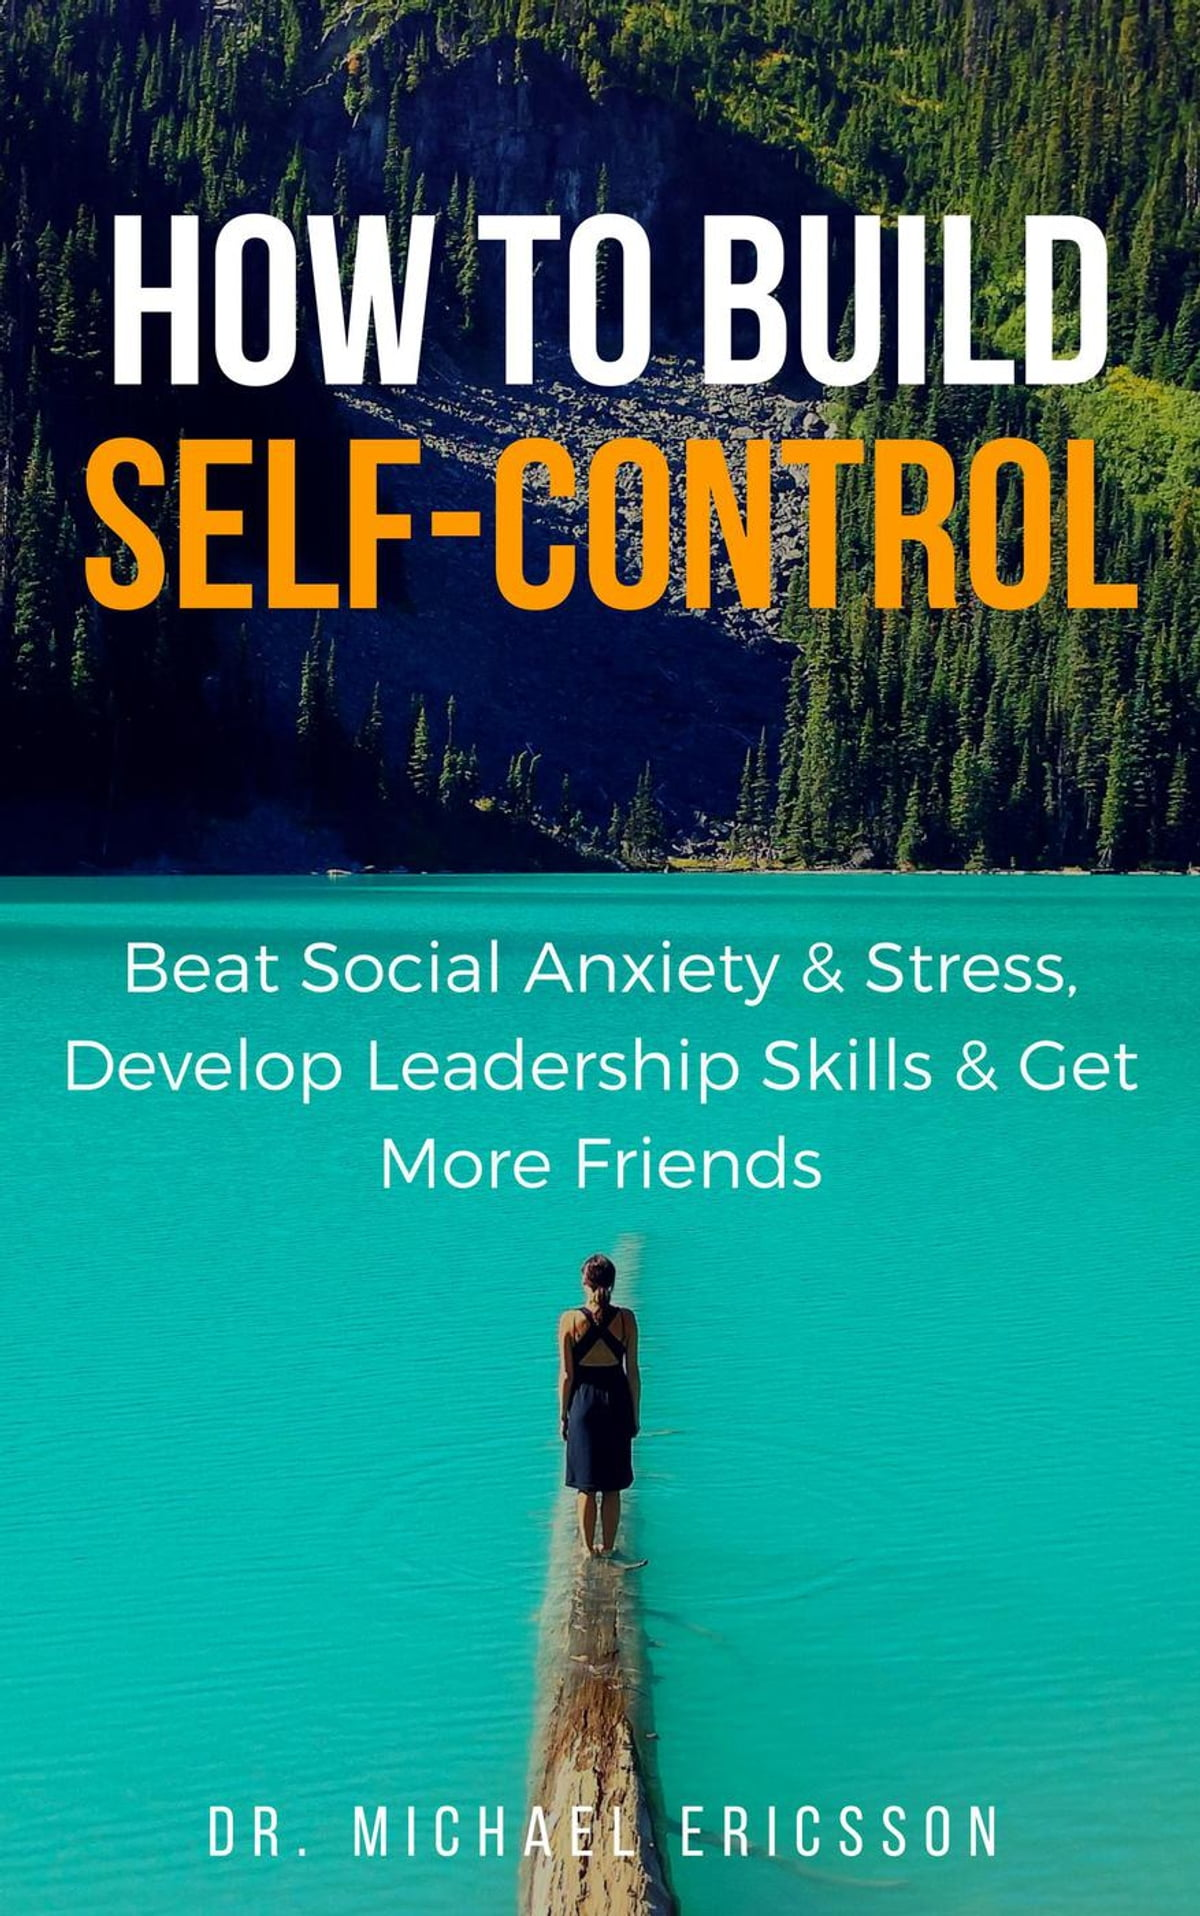 How to Build Self-Control: Beat Social Anxiety & Stress